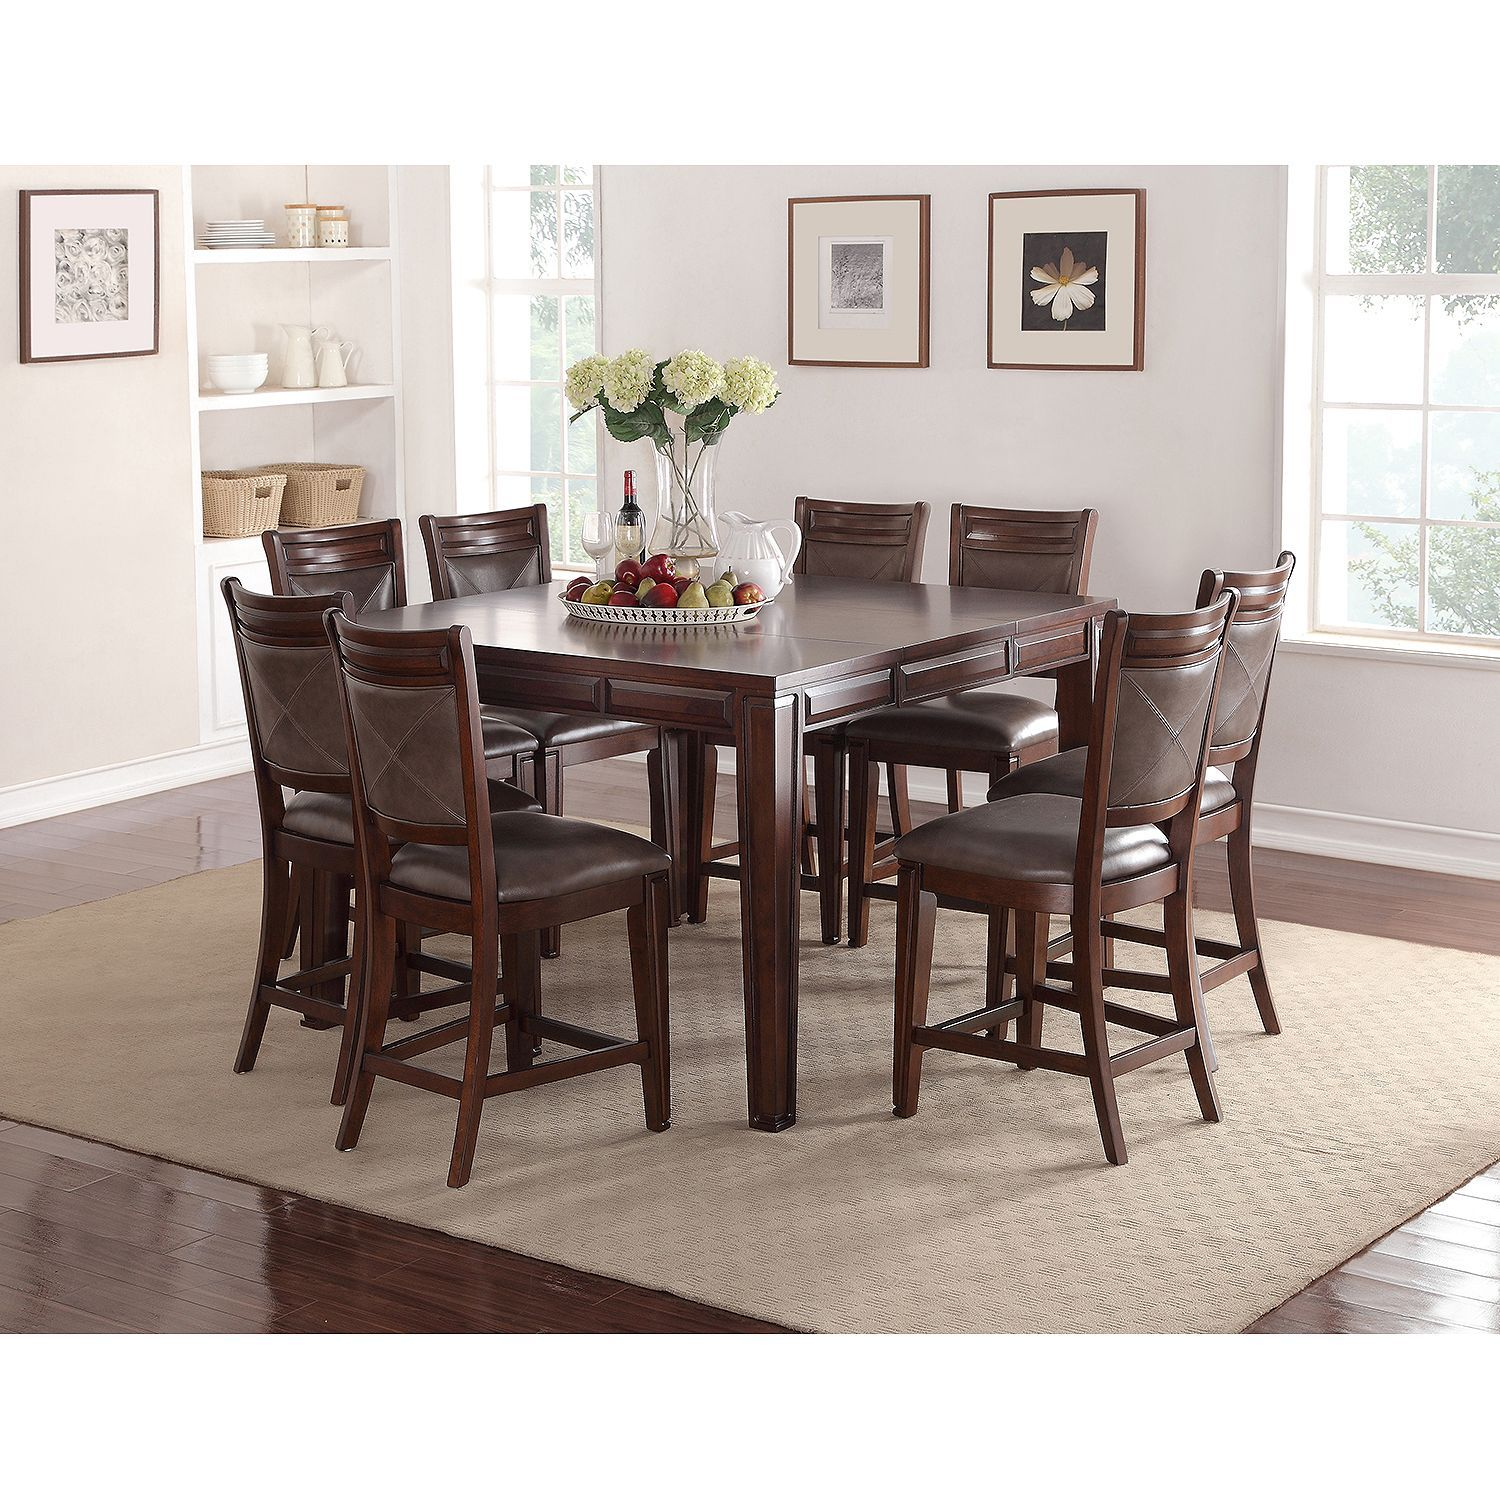 Member S Mark Audrey Counter Height Table And Chairs 9 Piece